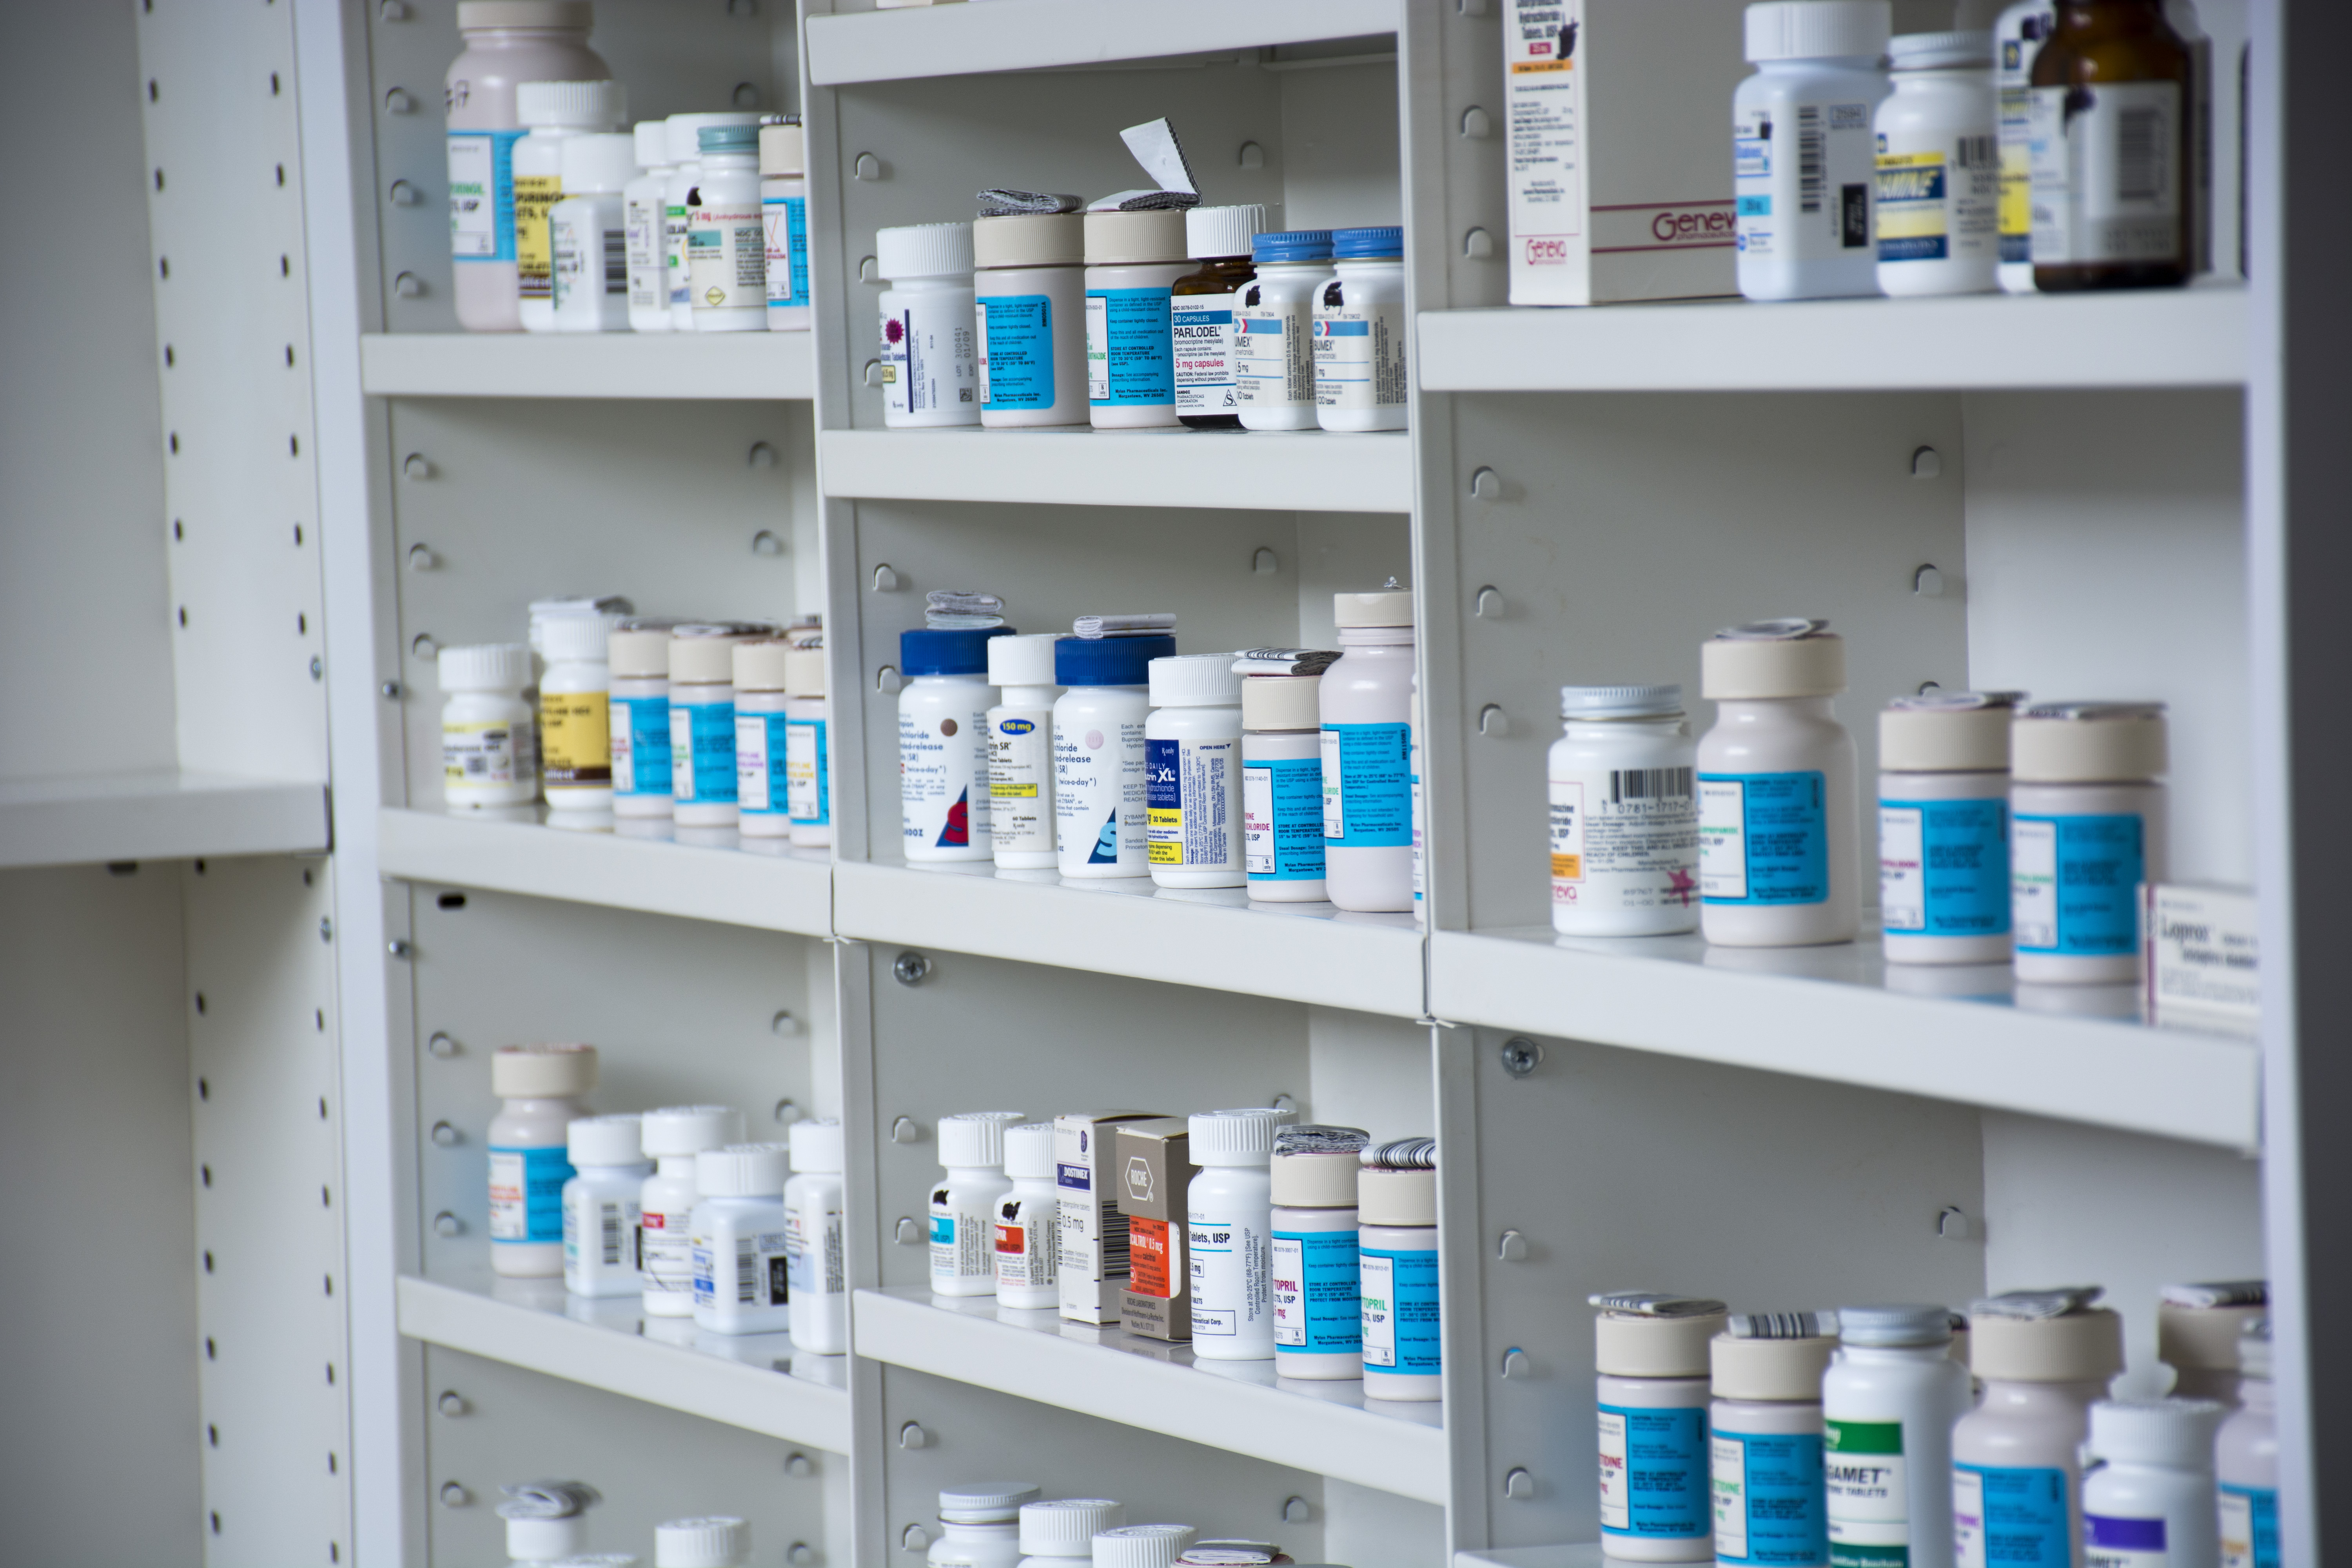 The Role of the Pharmacist in Public Health